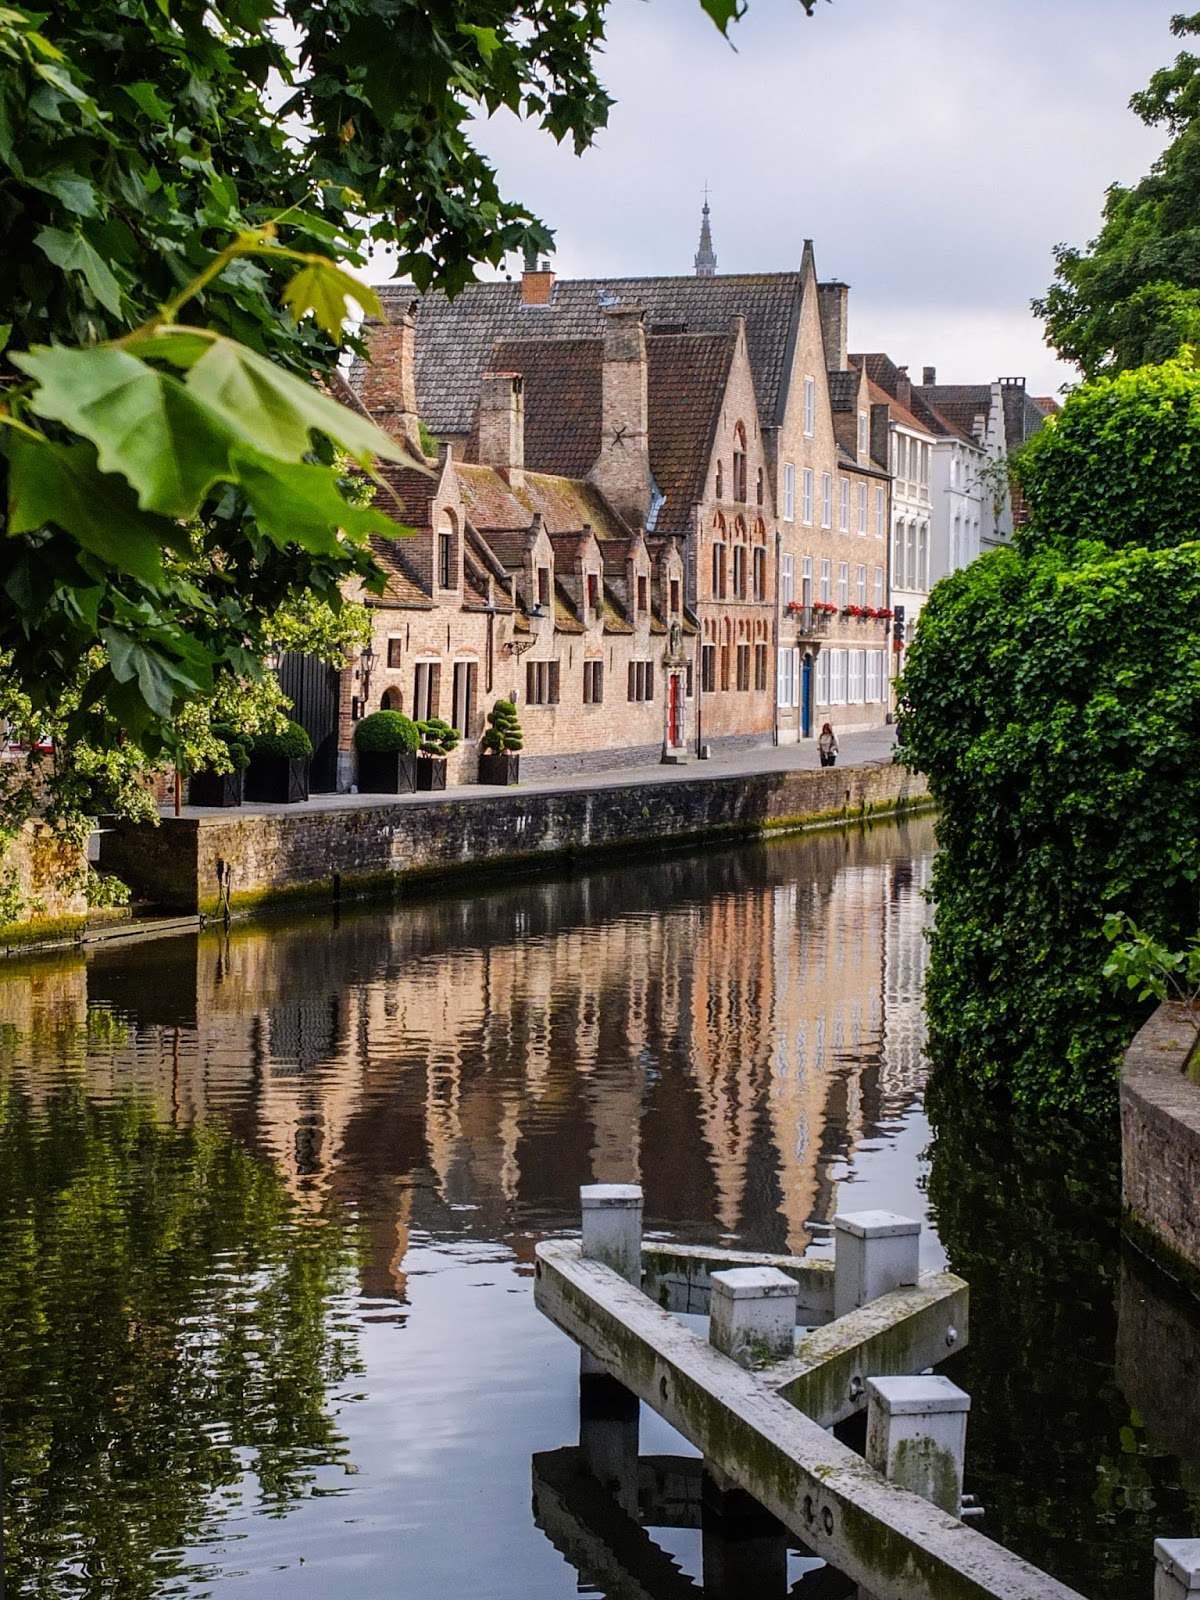 Red brick buildings along a canal in Bruges with maple trees in the foreground.